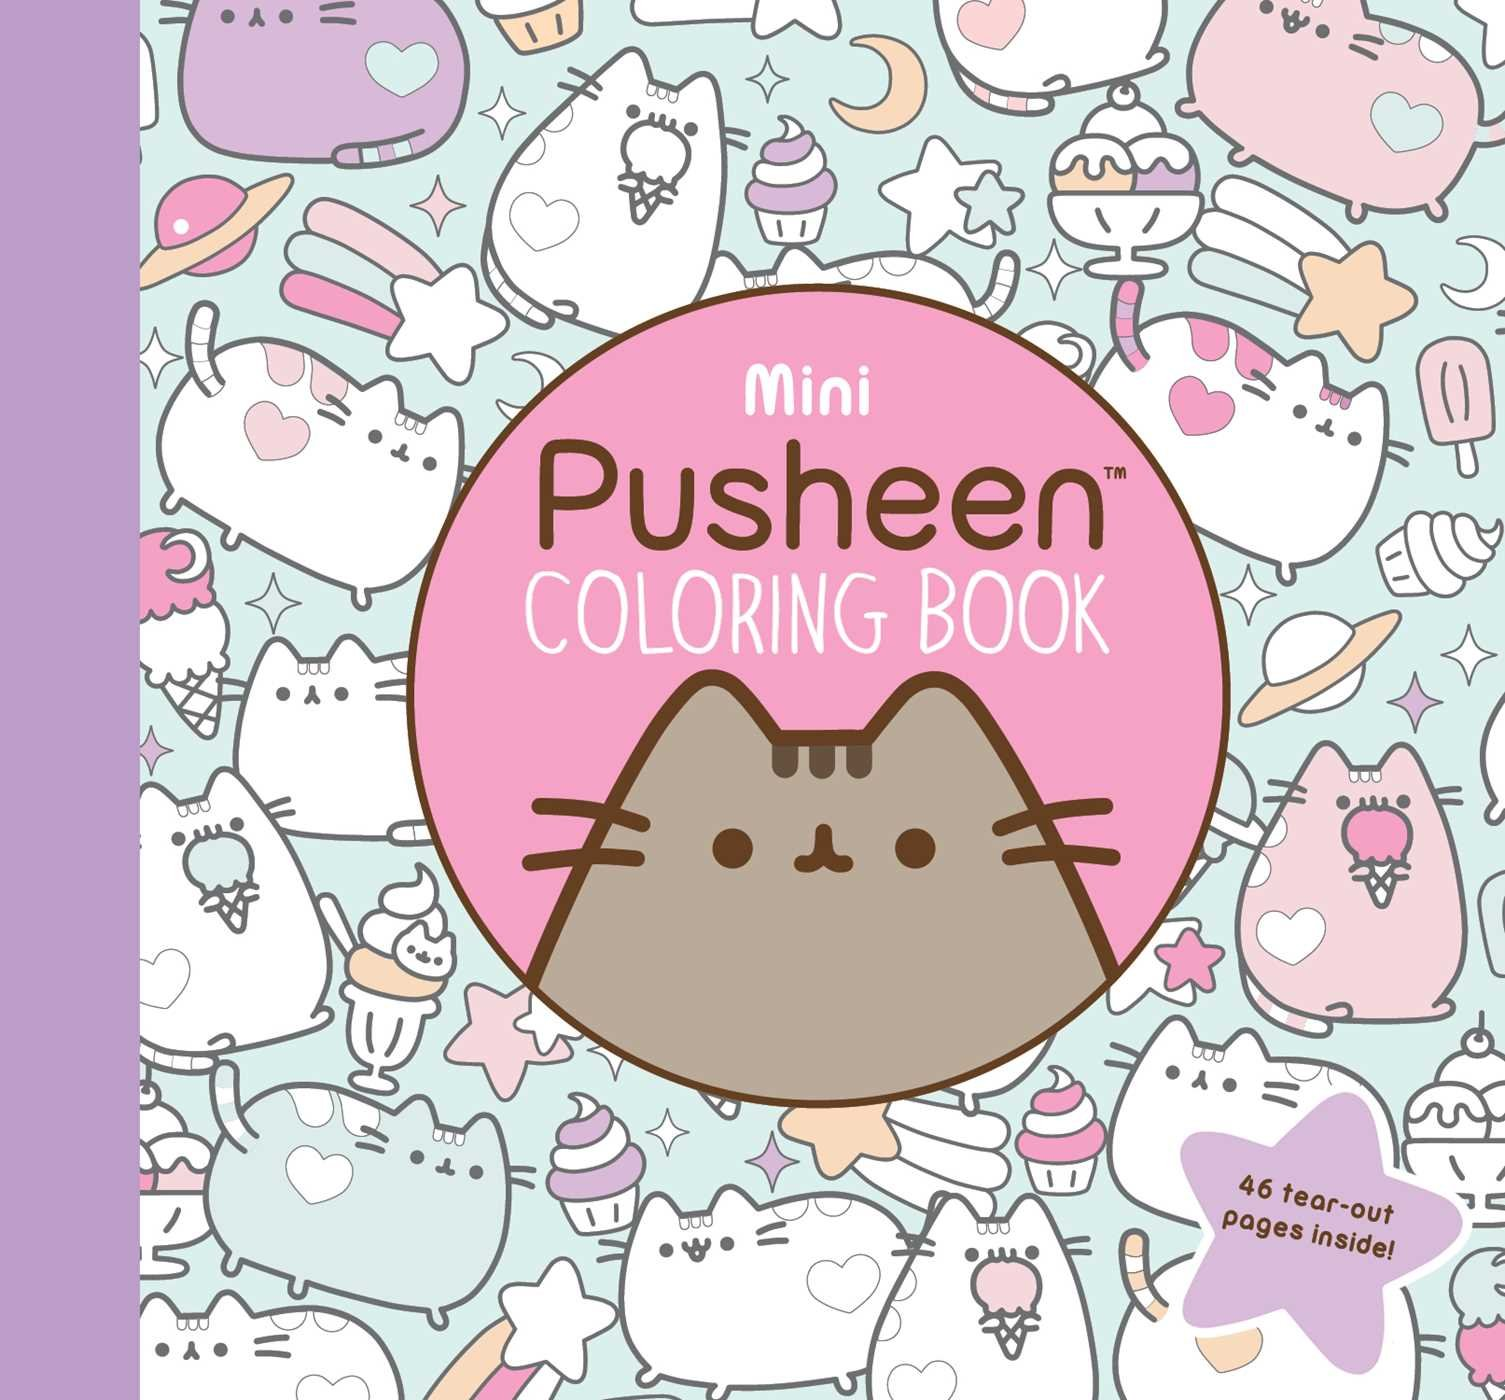 Amazon.com: Mini Pusheen Coloring Book (9781501180972): Claire ...